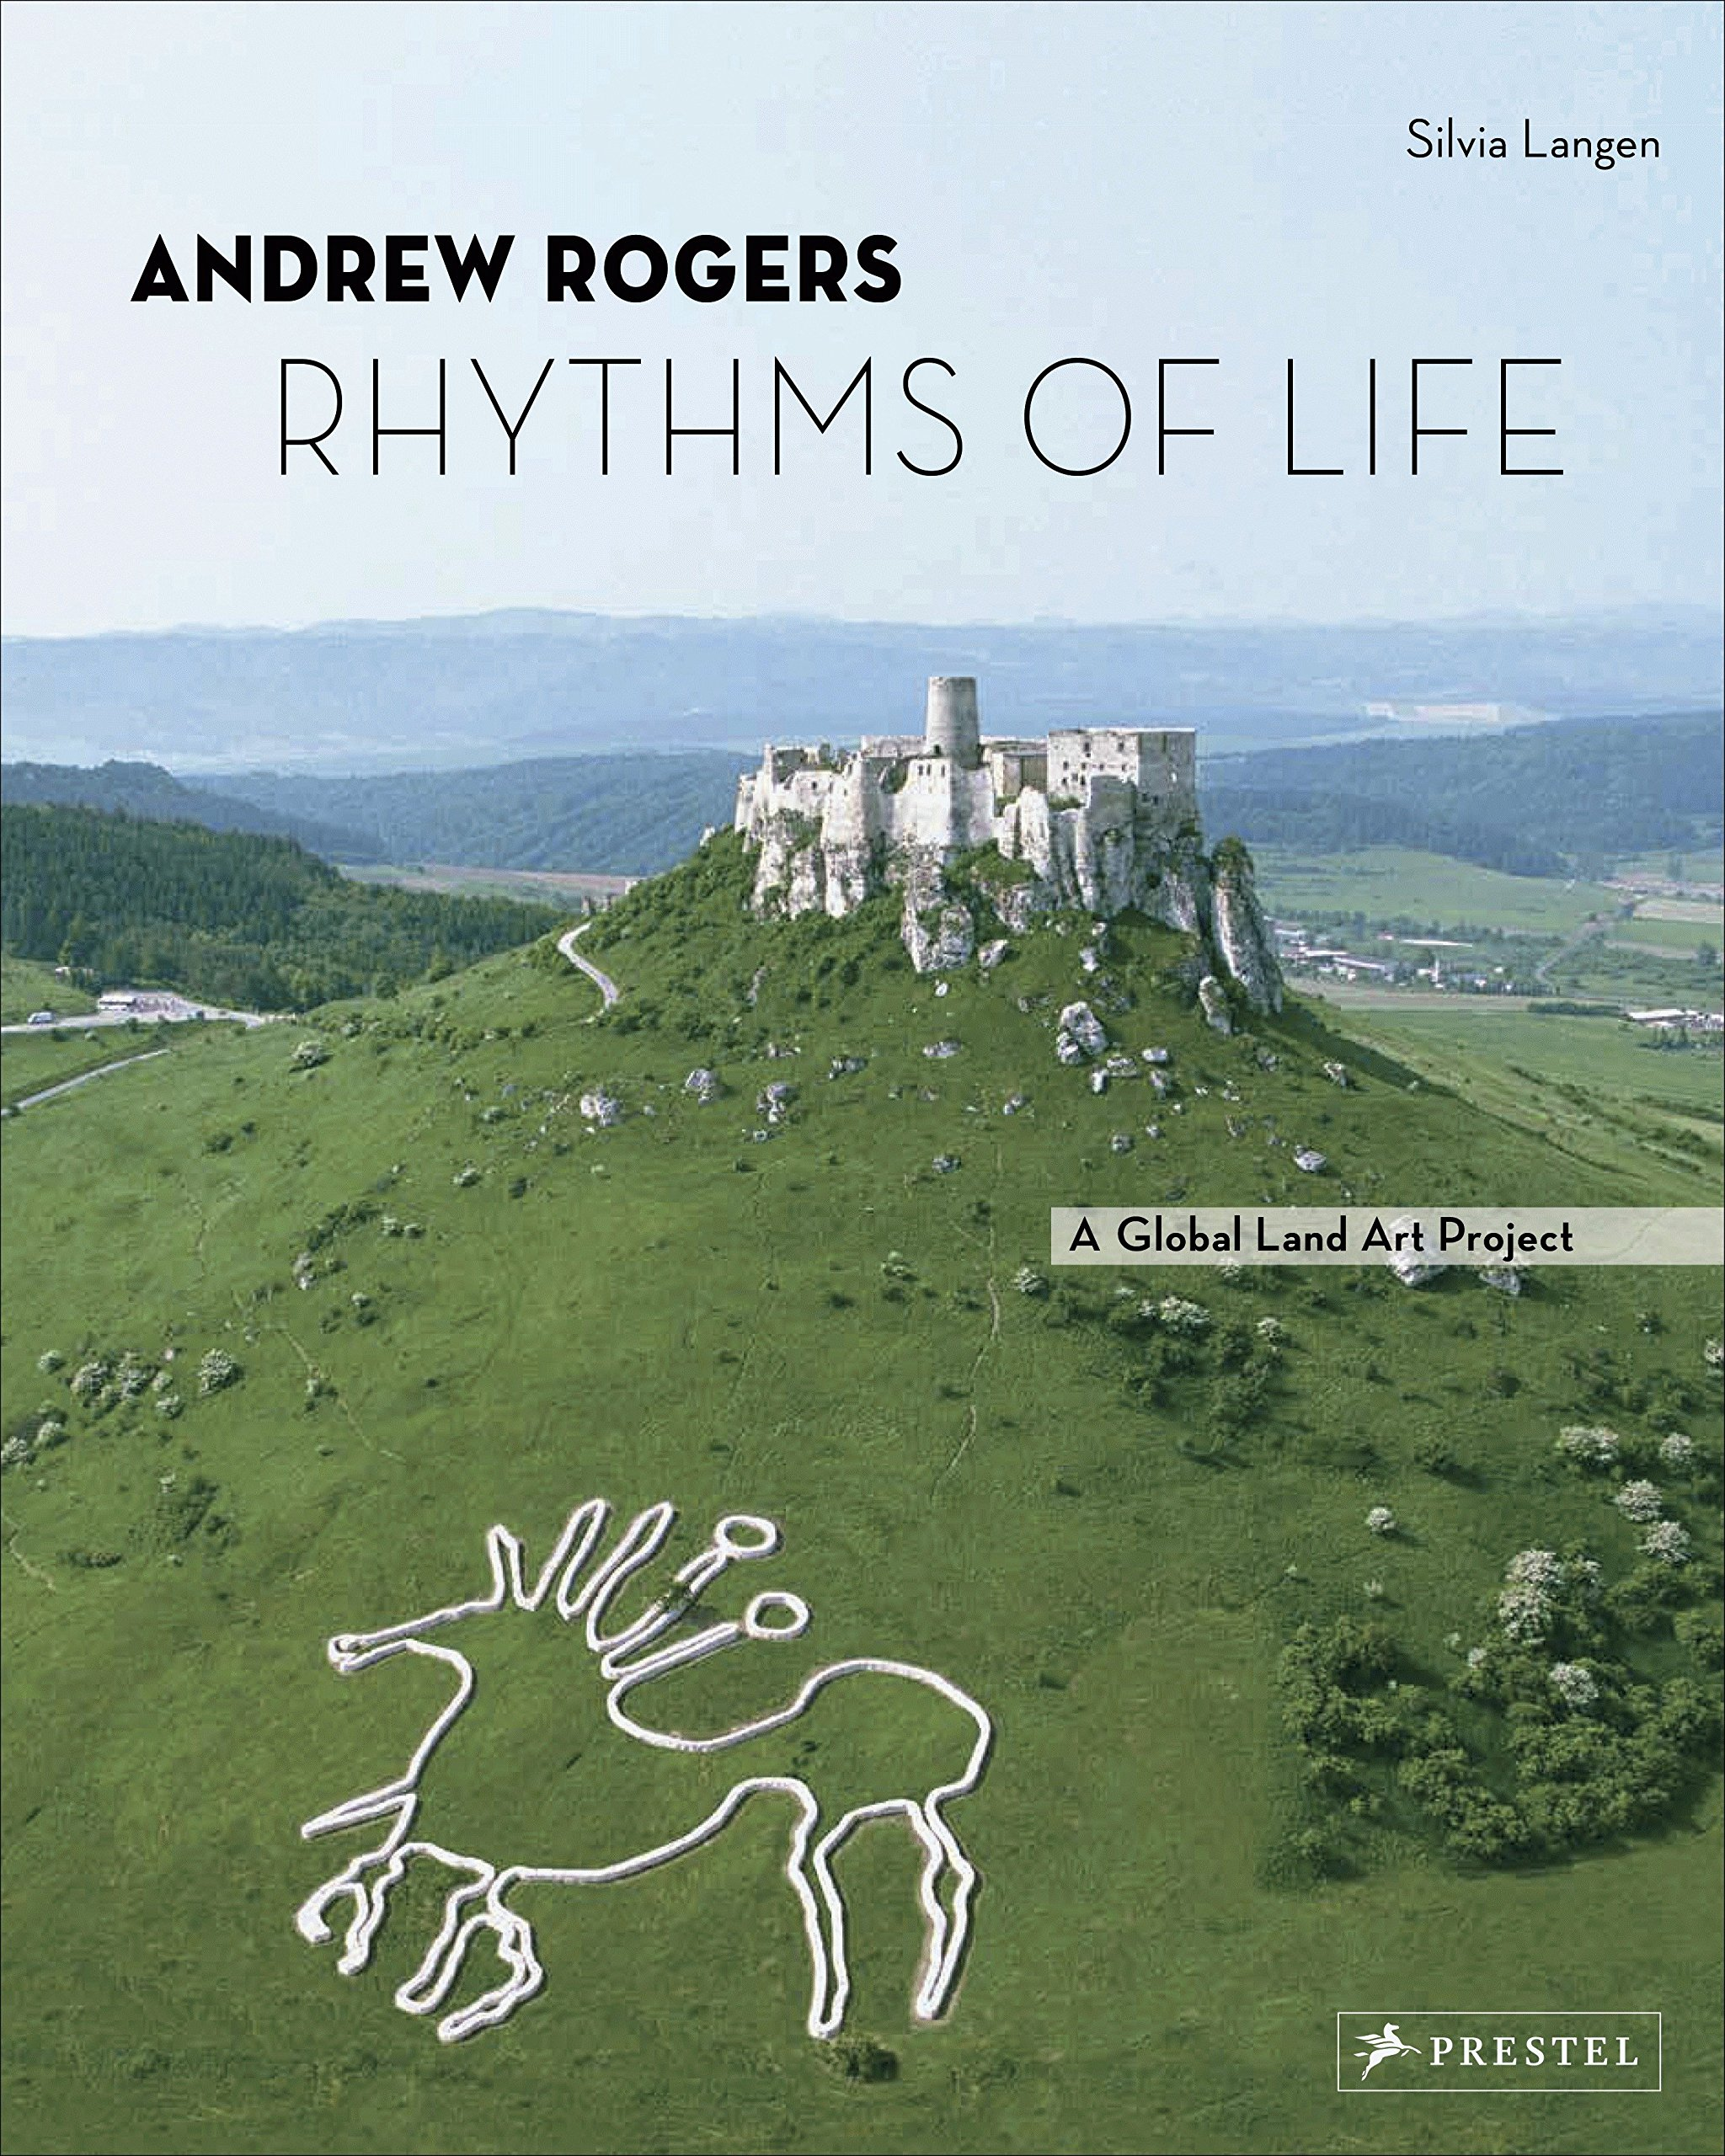 Andrew Rogers: Rhythms of Life―A Global Land Art Project by Langen Silvia